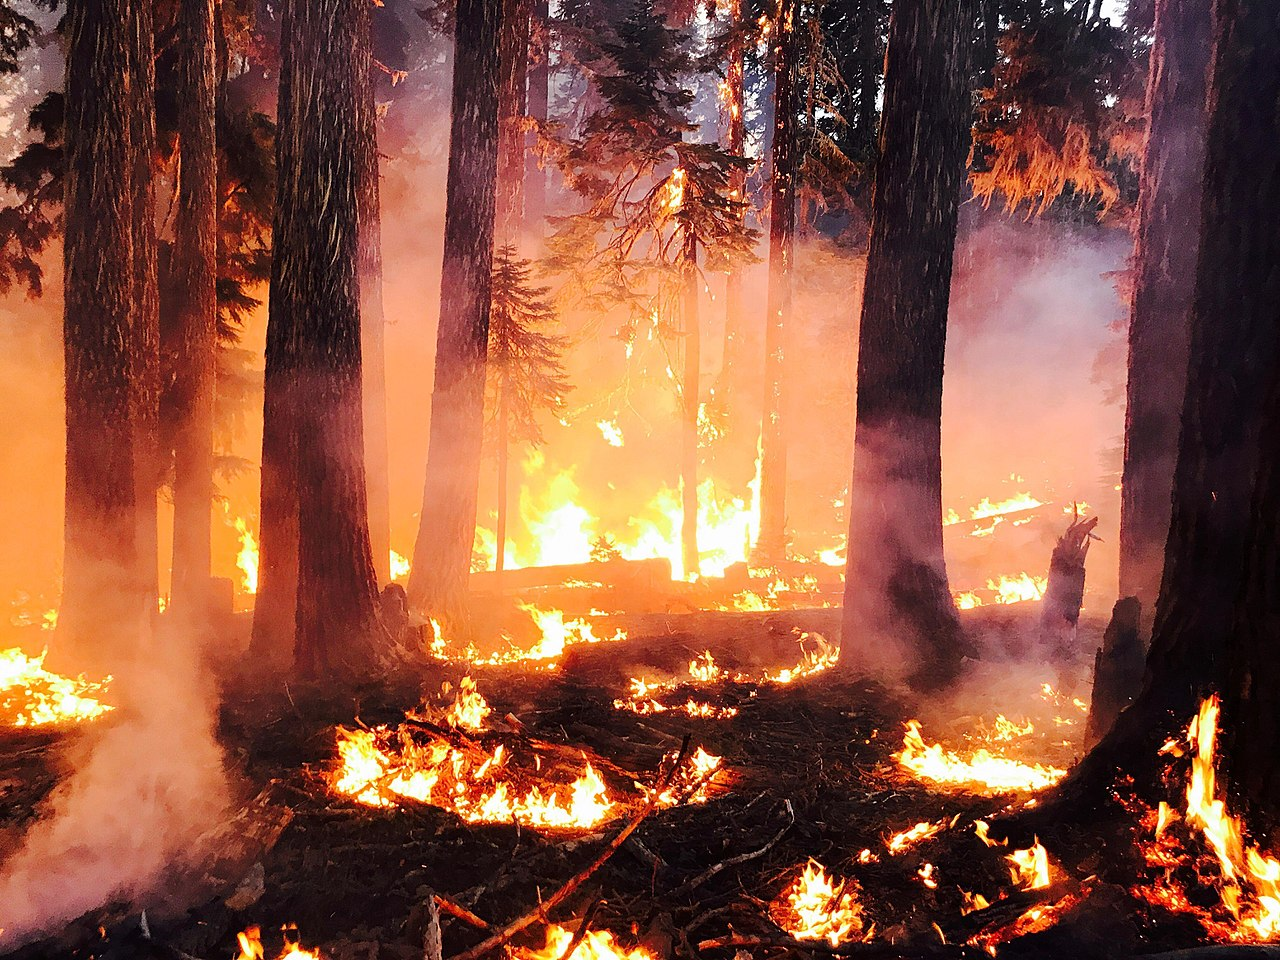 Blanket Creek Fire During Night Ops Date 2 August 2017 Source https-::inciweb.nwcg.gov:incident:photograph:5503:39:68765: Author US Forest Service